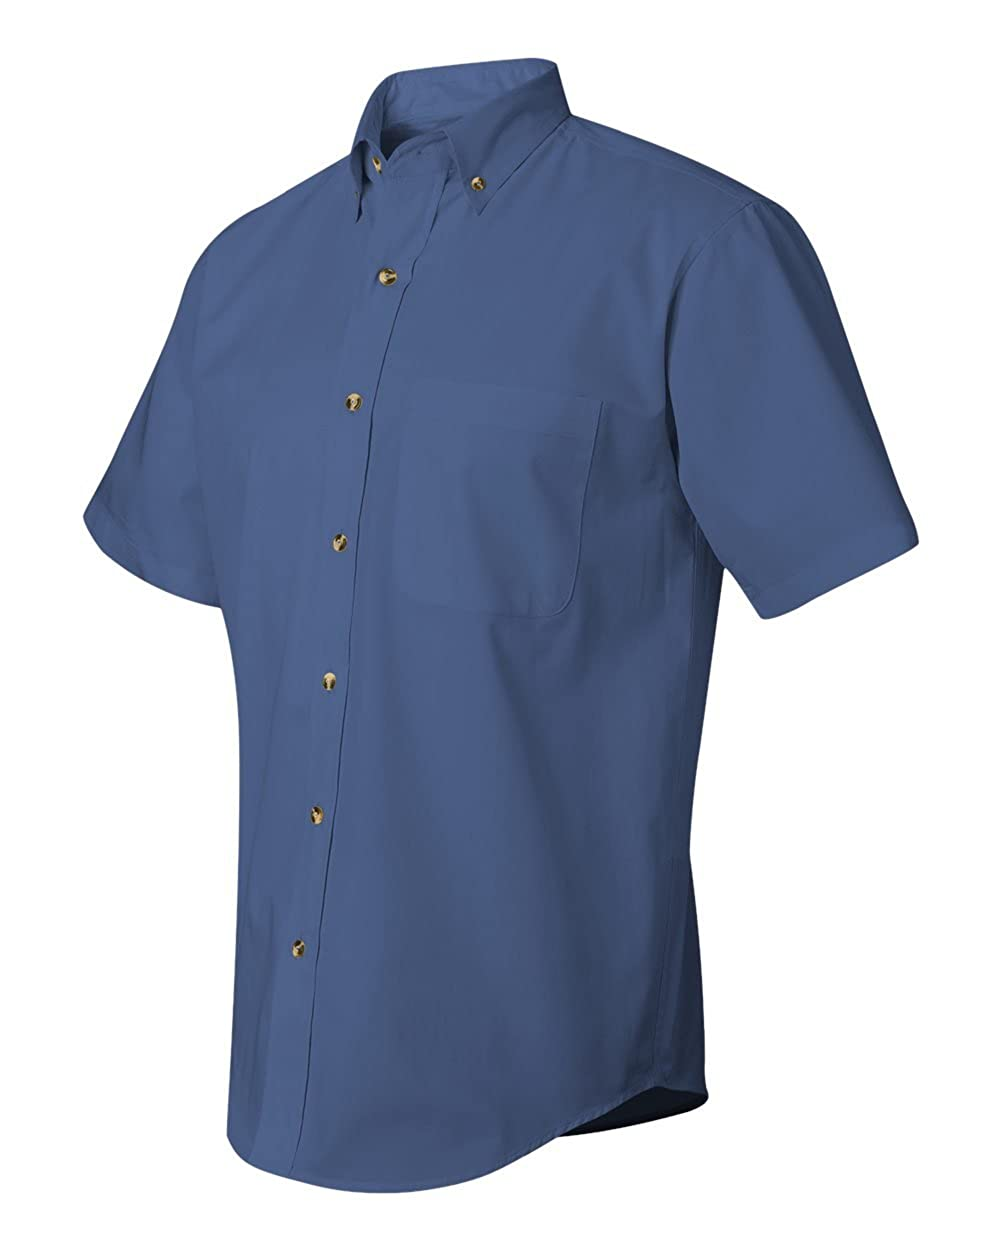 Short Sleeve Stain-Resistant Twill Shirt 0281 FeatherLite